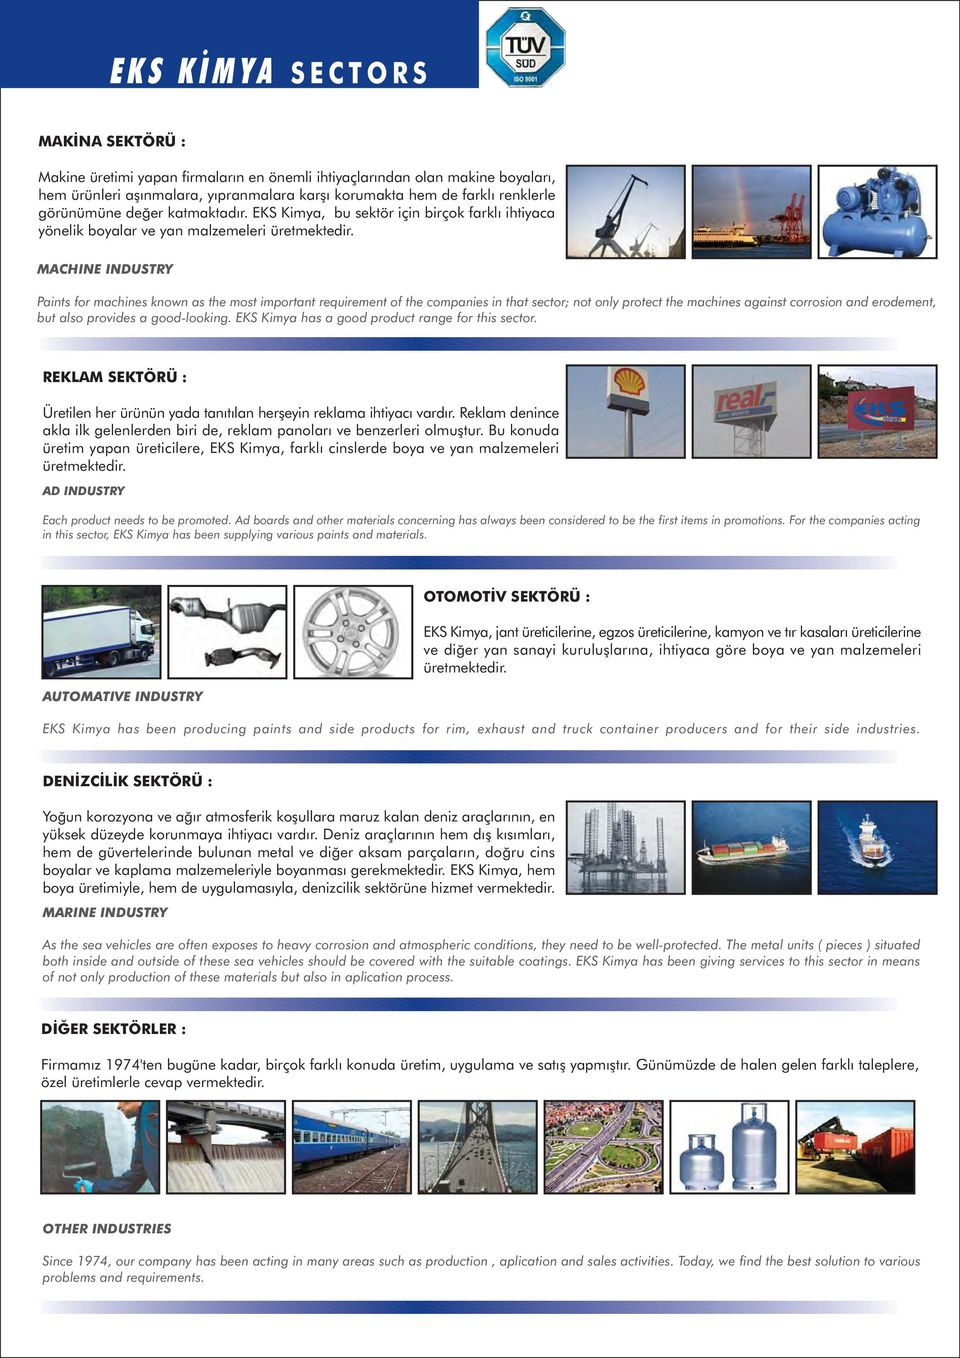 MACHINE INDUSTRY Paints for machines known as the most important requirement of the companies in that sector; not only protect the machines against corrosion and erodement, but also provides a